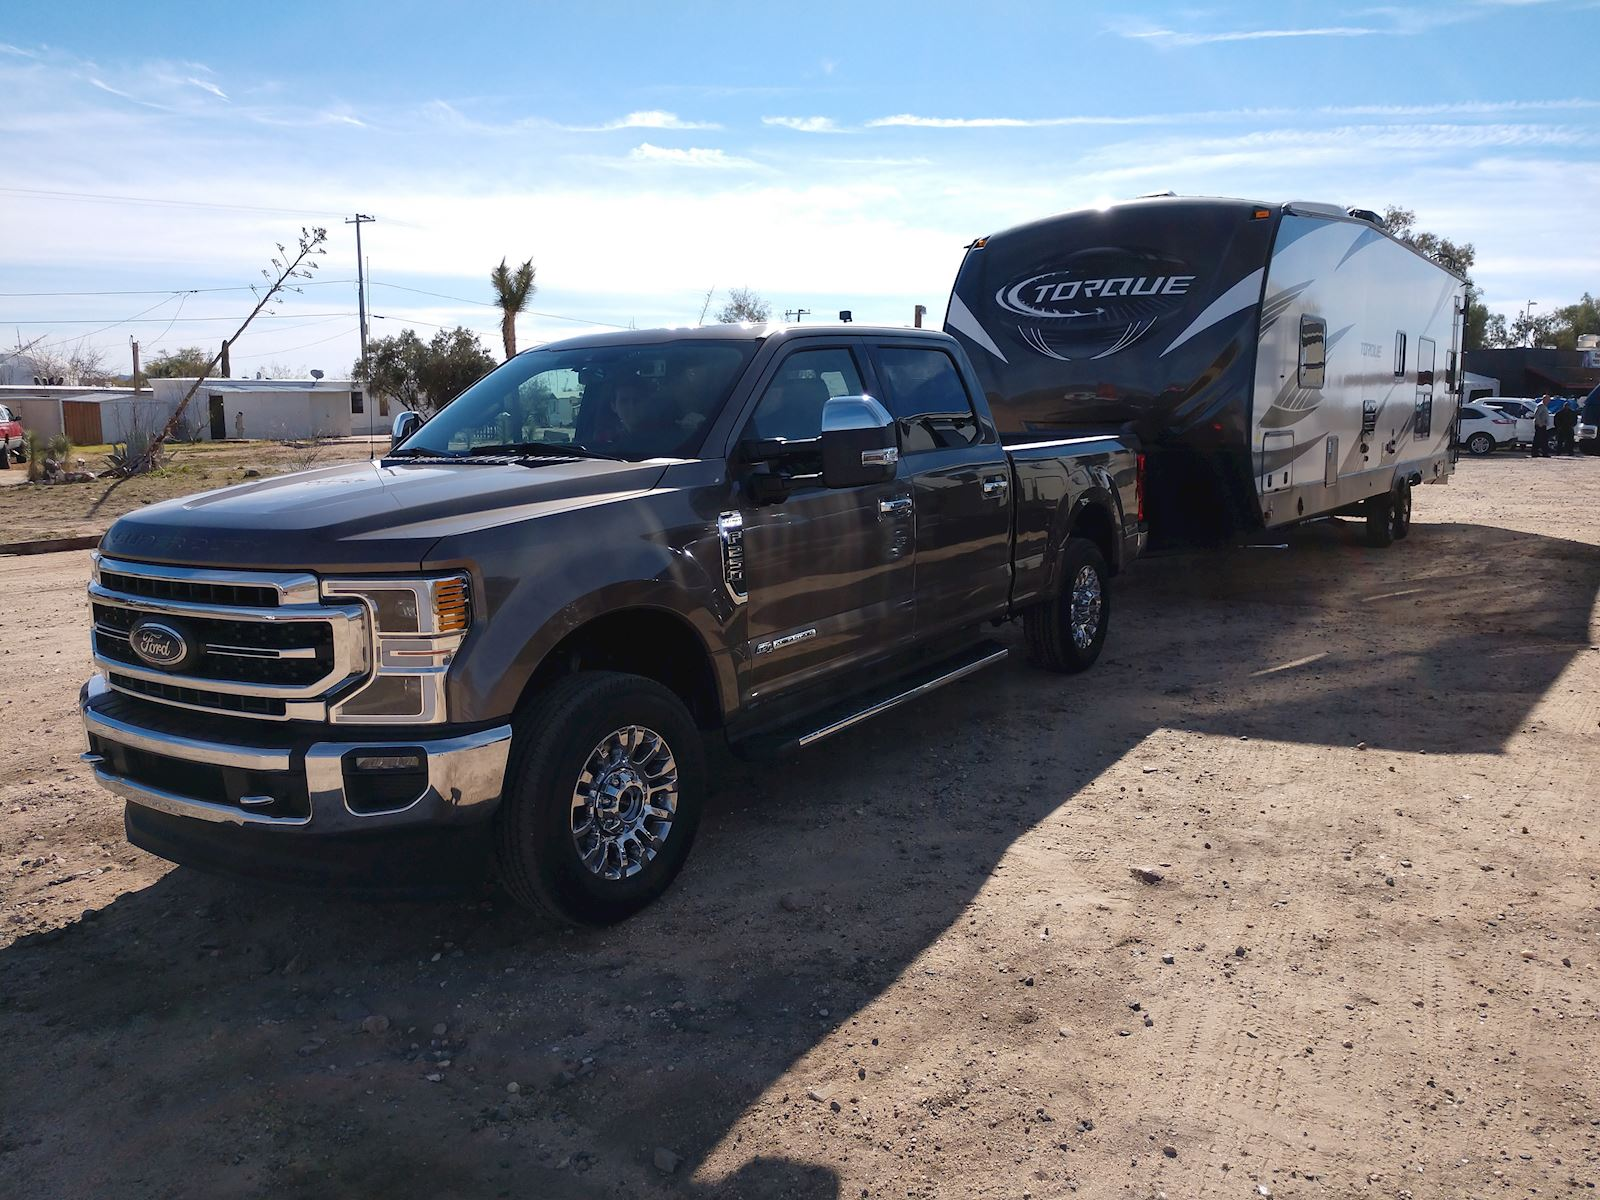 2020 Ford F-250 Super Duty trailer hauling capabilities